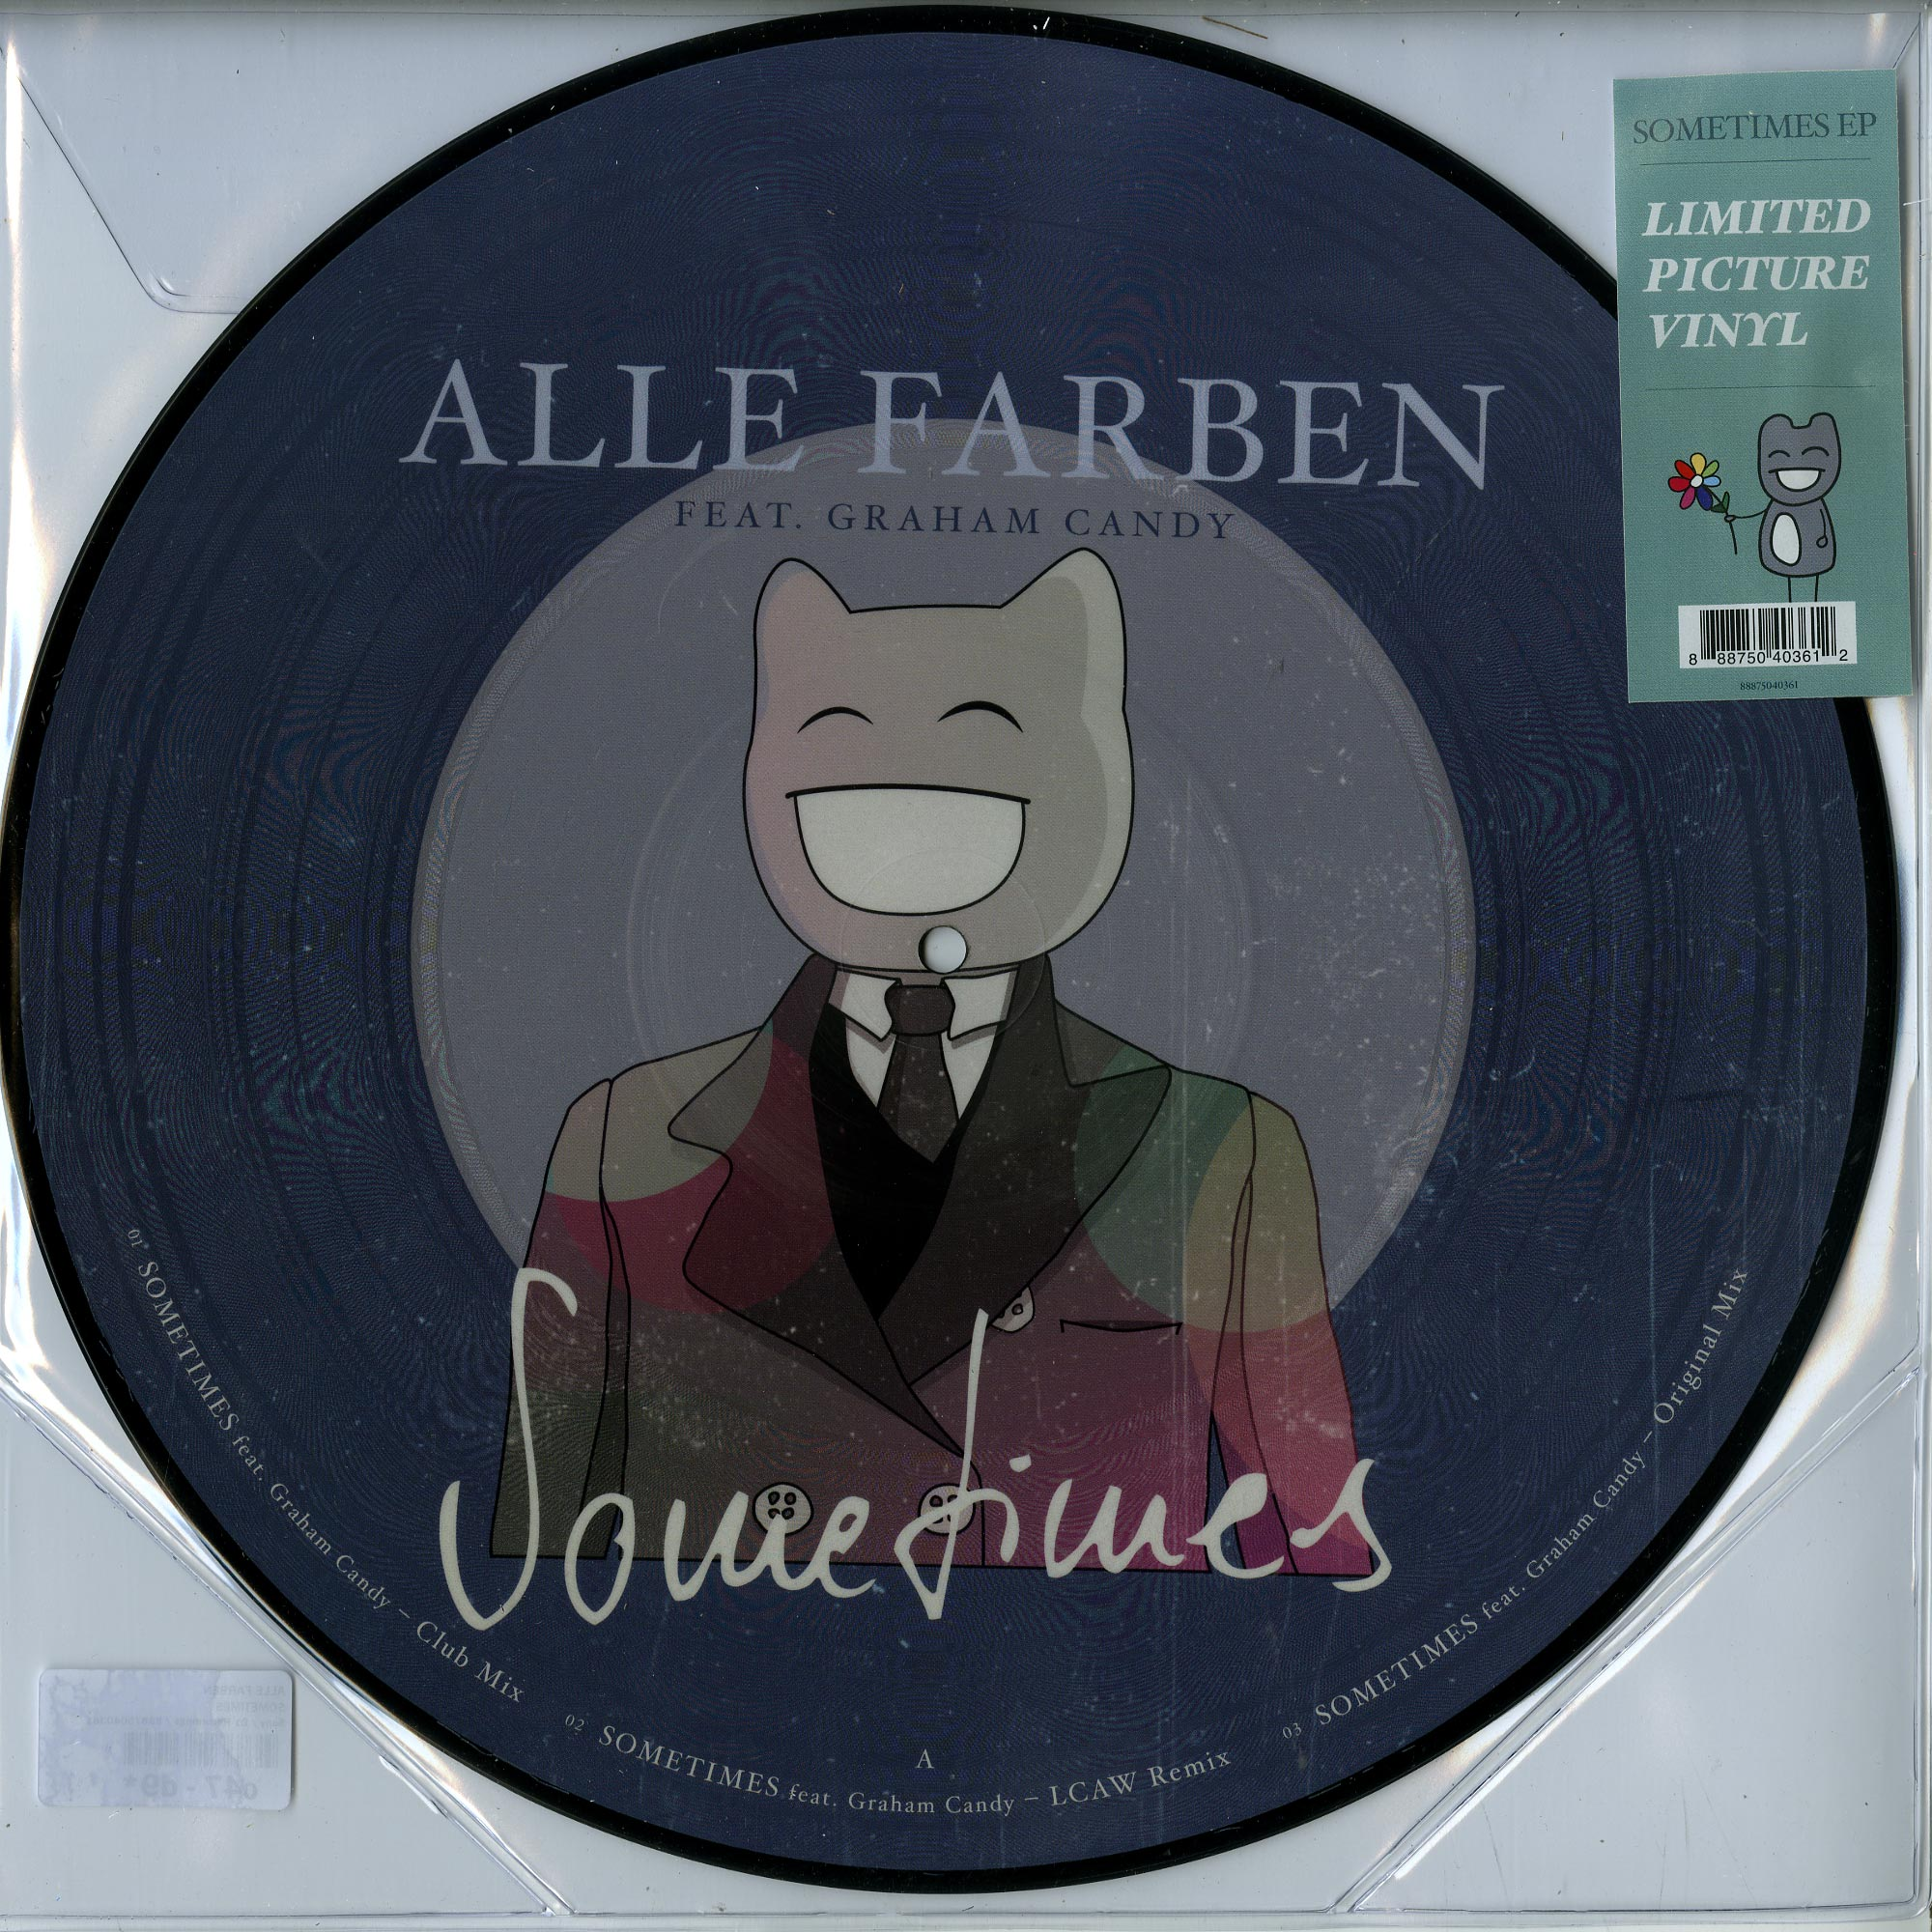 Alle Farben ft. Graham Candy - SOMETIMES